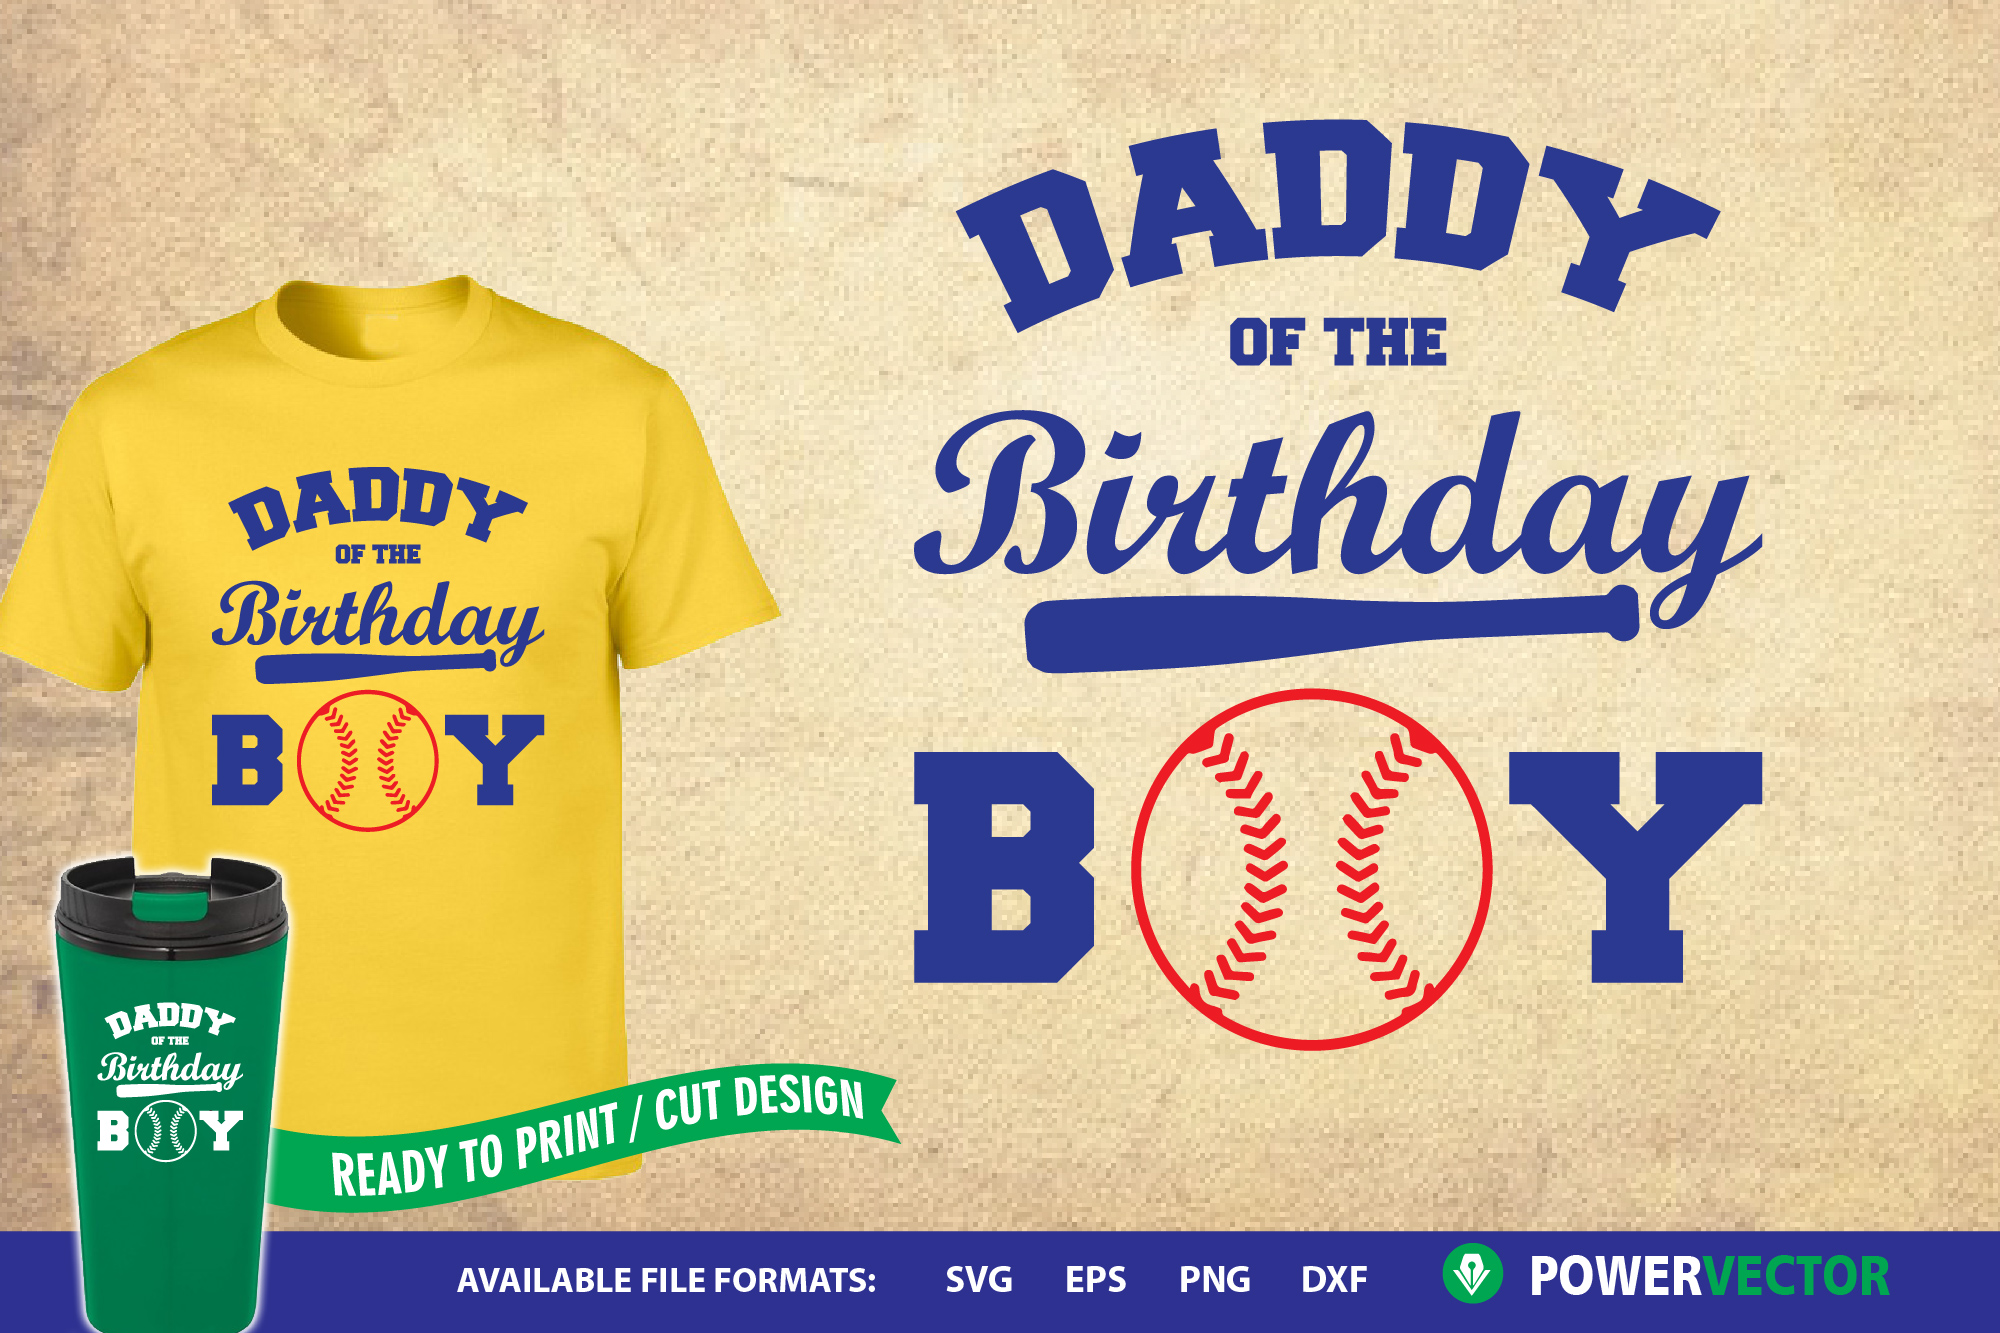 Daddy of the Birthday Boy|Kids Birthday Party Shirt Svg example image 1